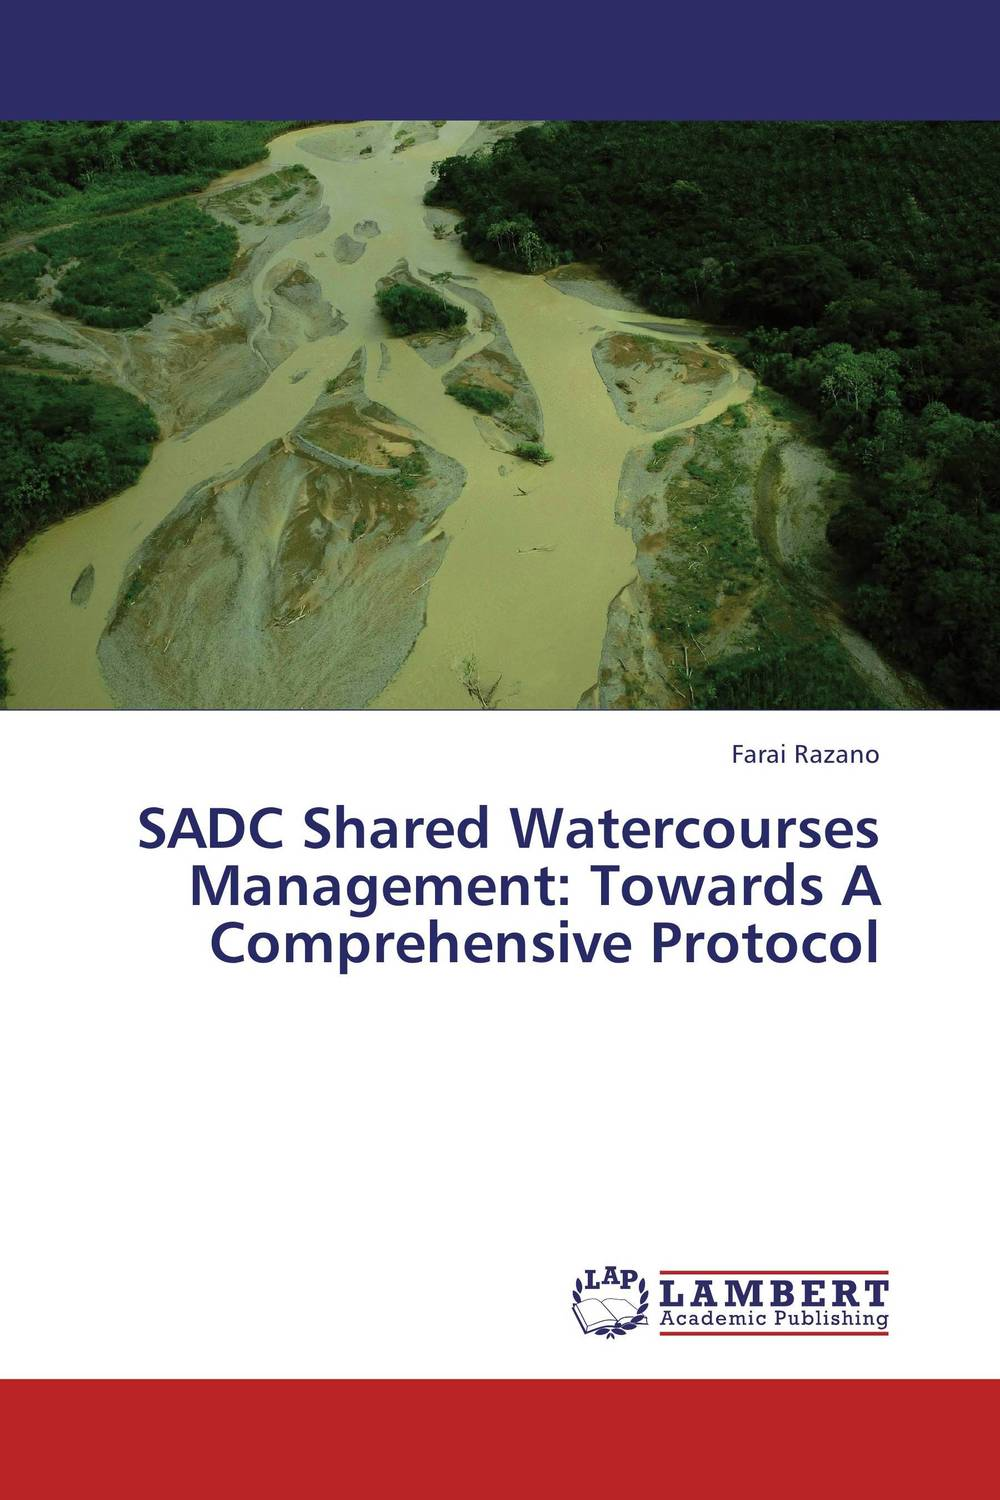 SADC Shared Watercourses Management: Towards A Comprehensive Protocol a decision support tool for library book inventory management